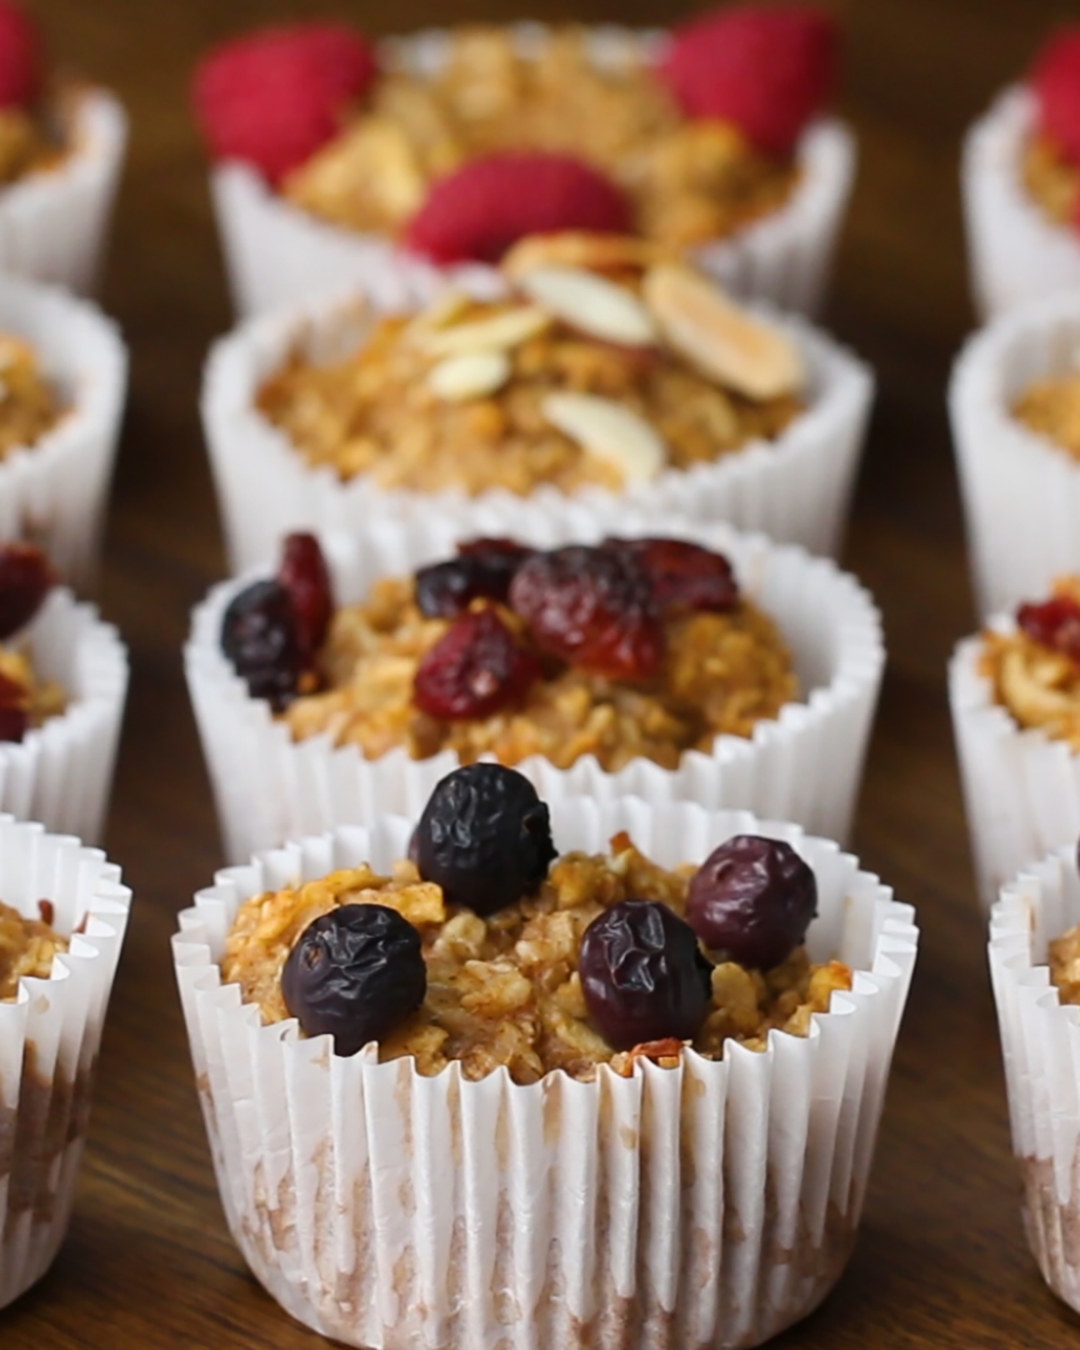 These Apple Cinnamon Oatmeal Muffins Are Great For Breakfast On-The-Go